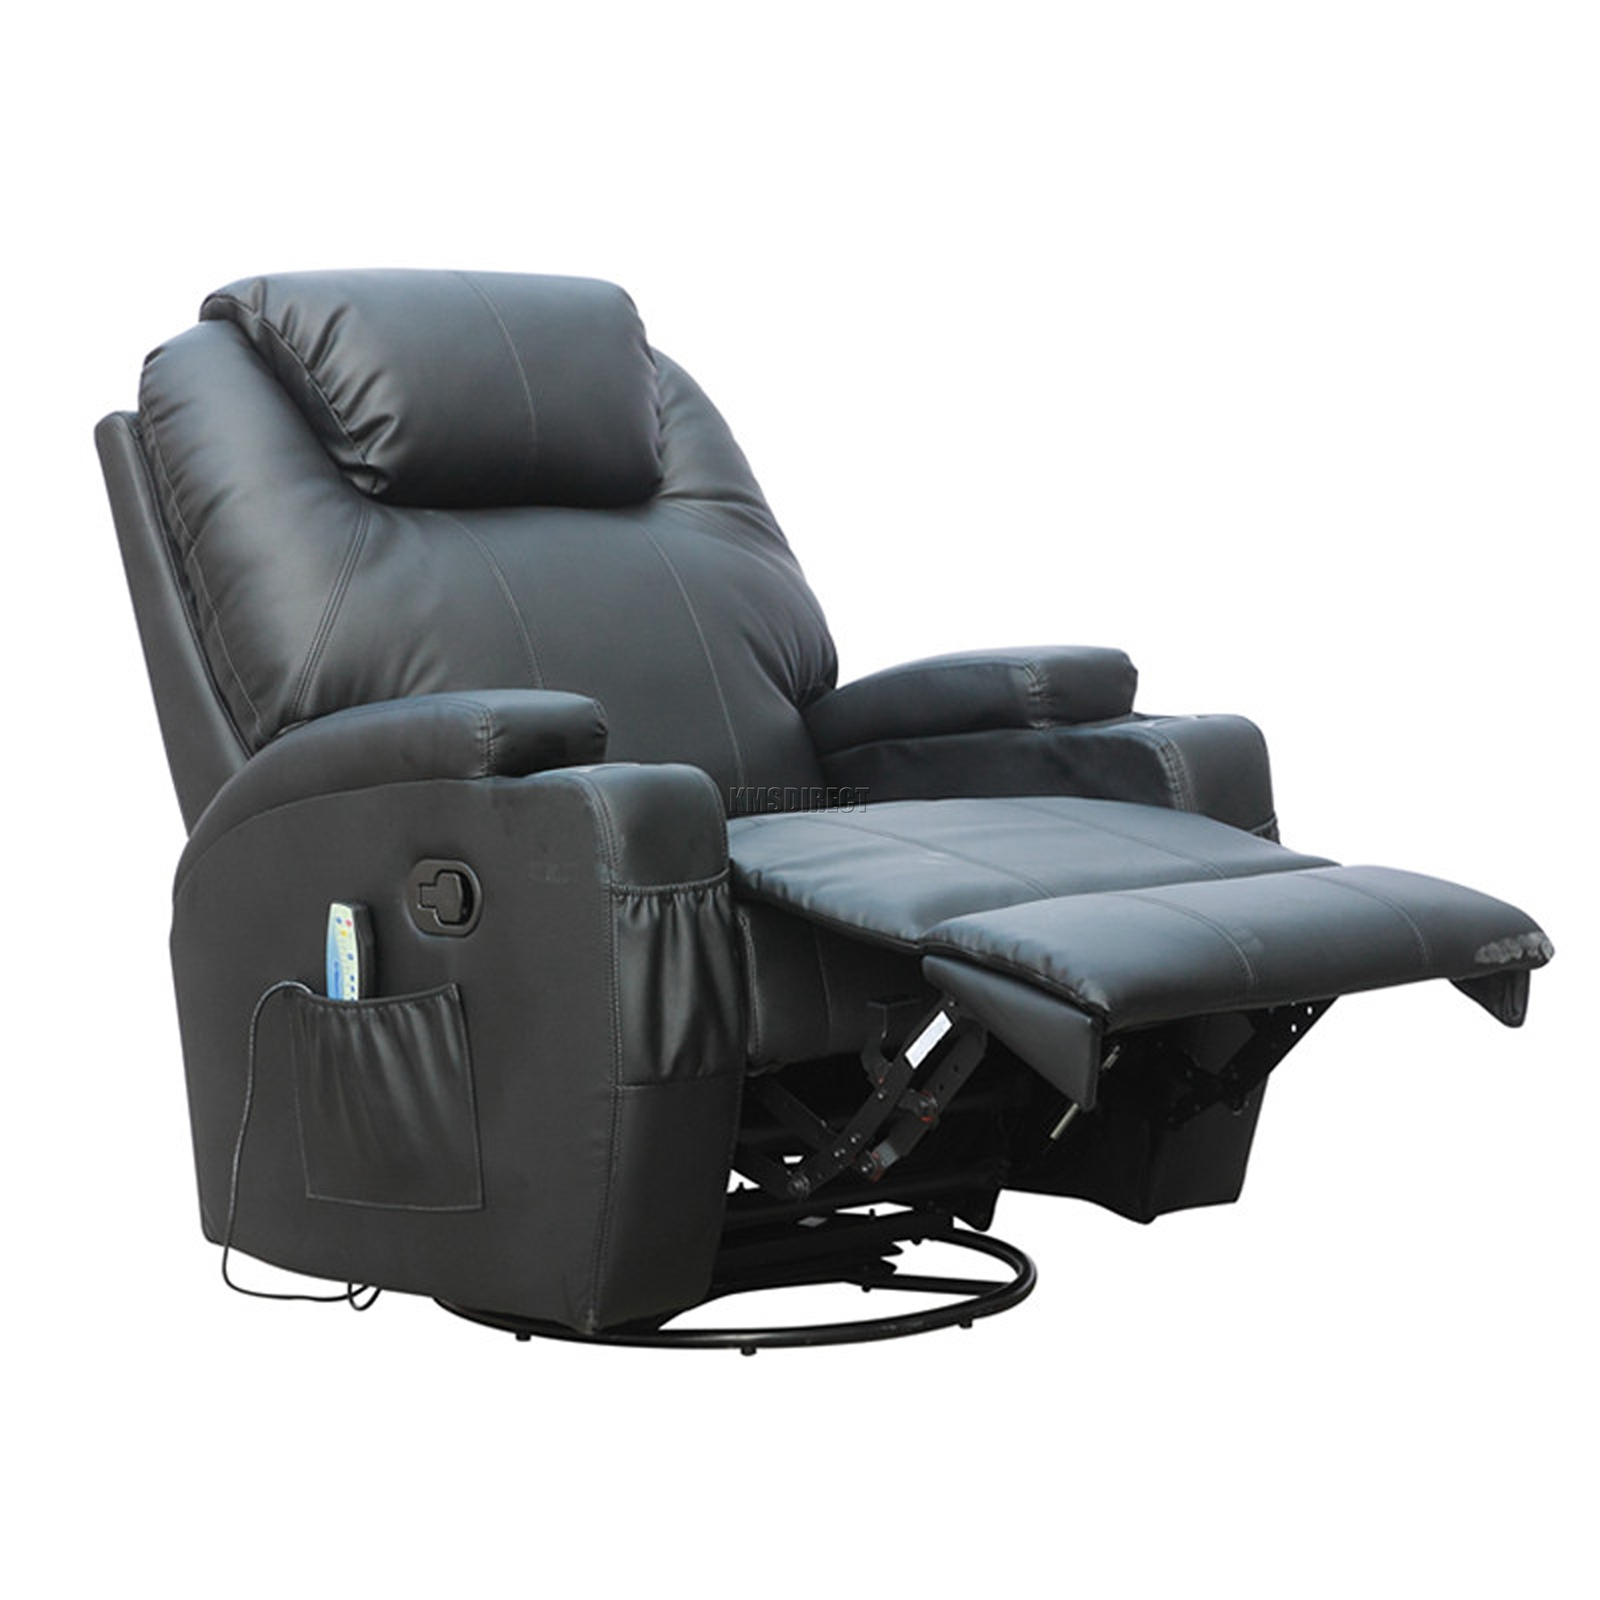 Wonderful FoxHunter Bonded Leather Sofa Massage Recliner Chair Swivel